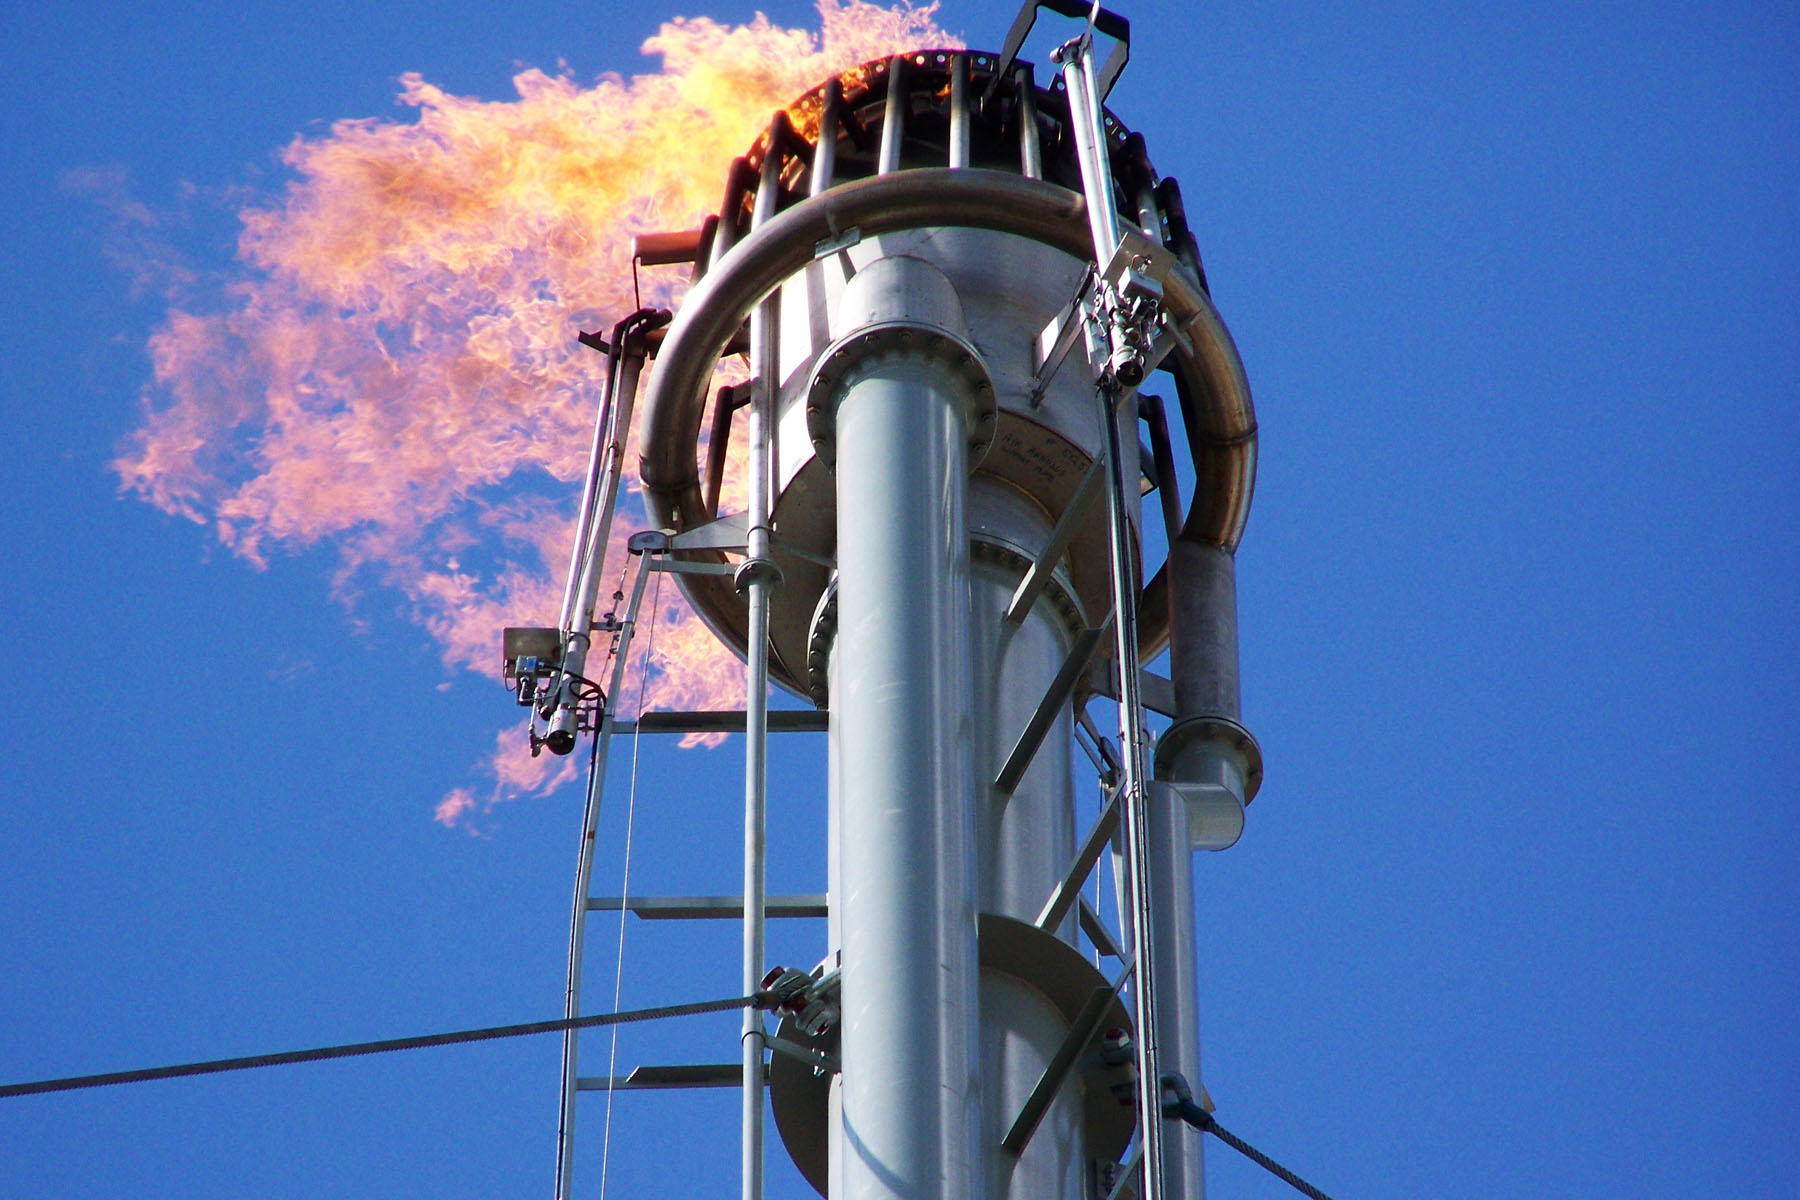 Combustion equipment flare stack